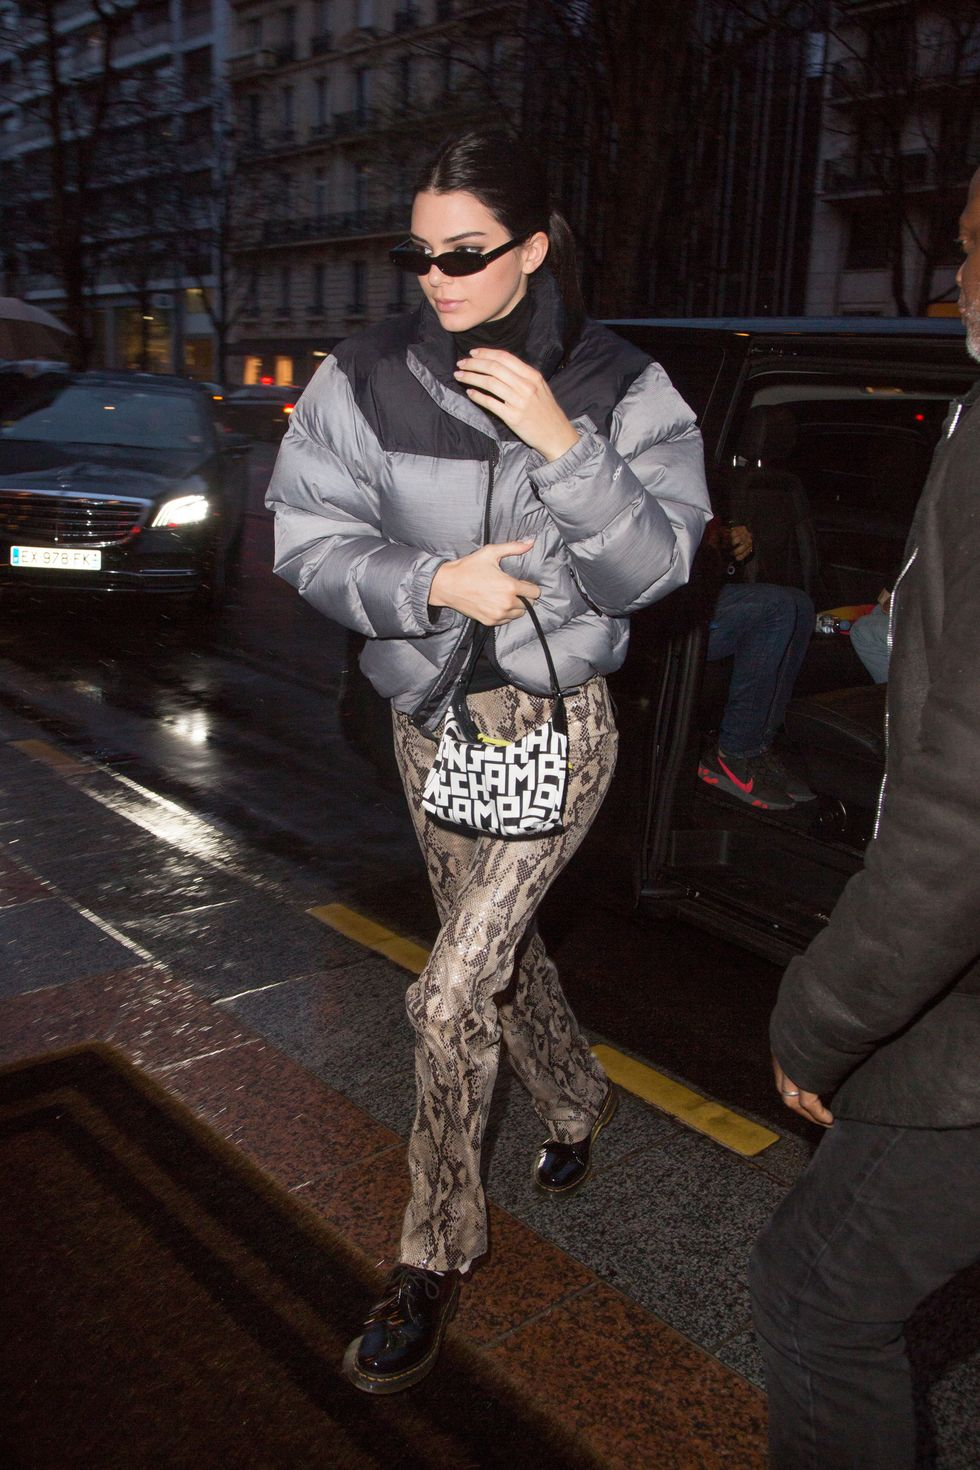 March 14, 2019 The star bundled up for the rainy weather in a silver puffer jacket and spiced things up with snakeskin pants.